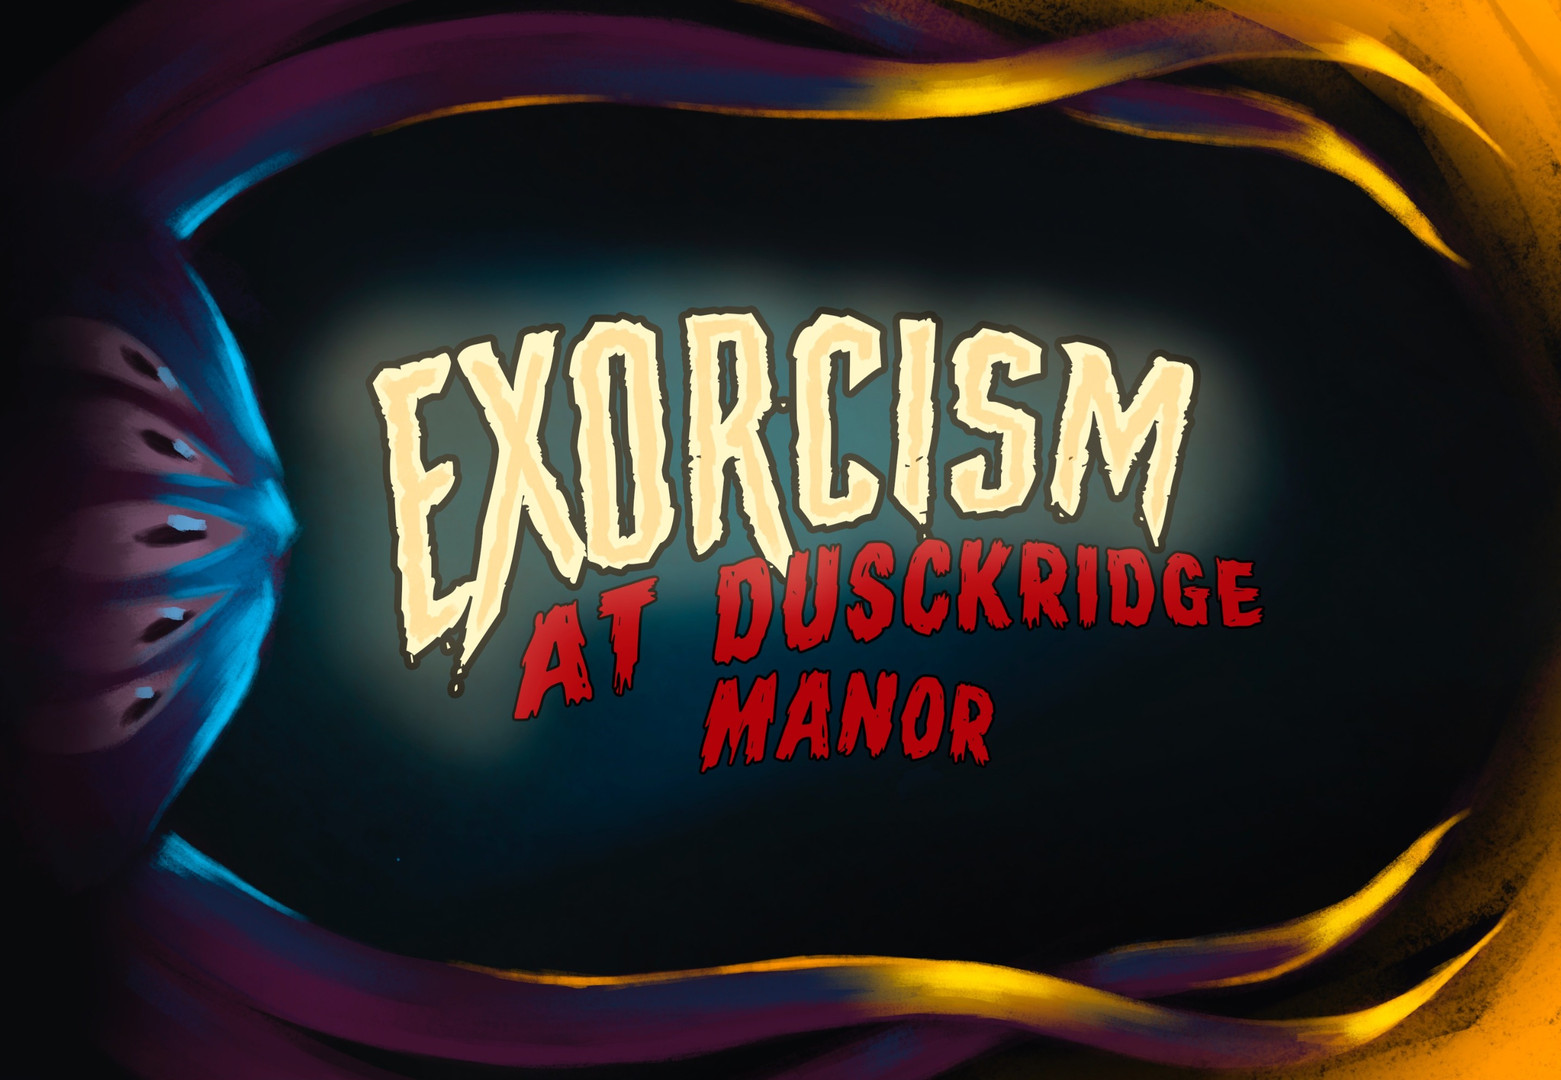 Exorcism At Dusckridge Manor